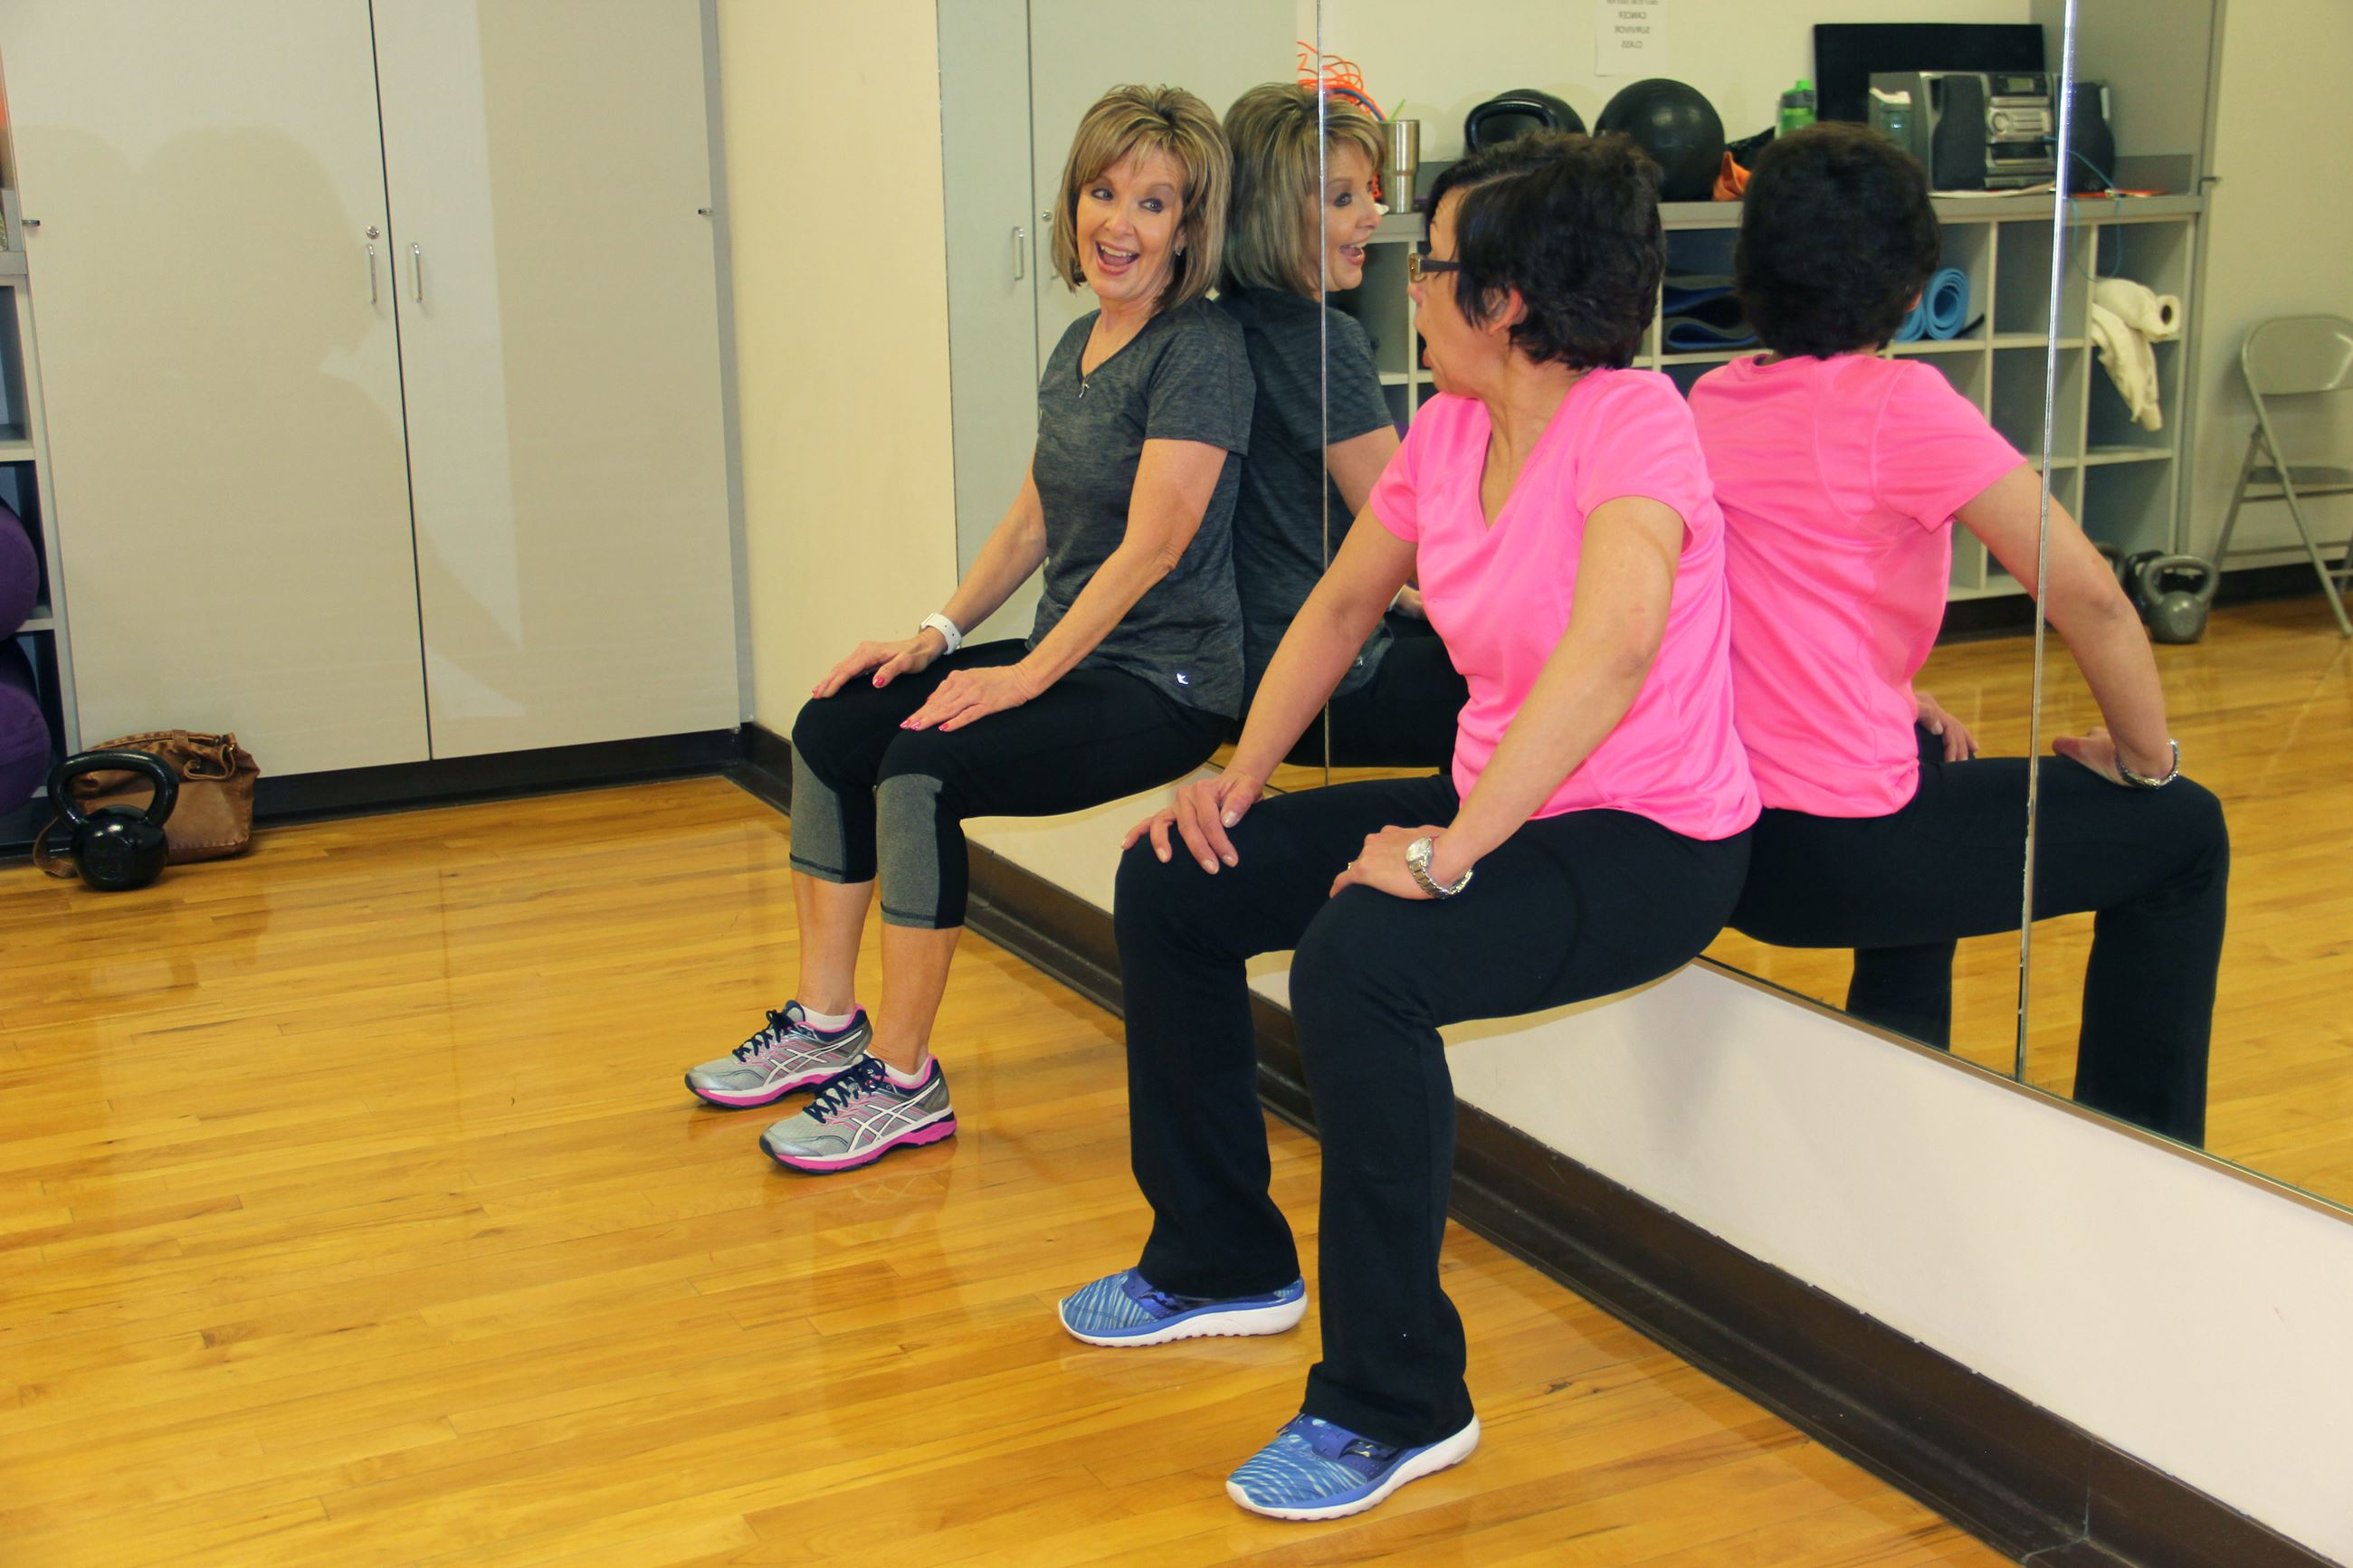 Women doing wall sits